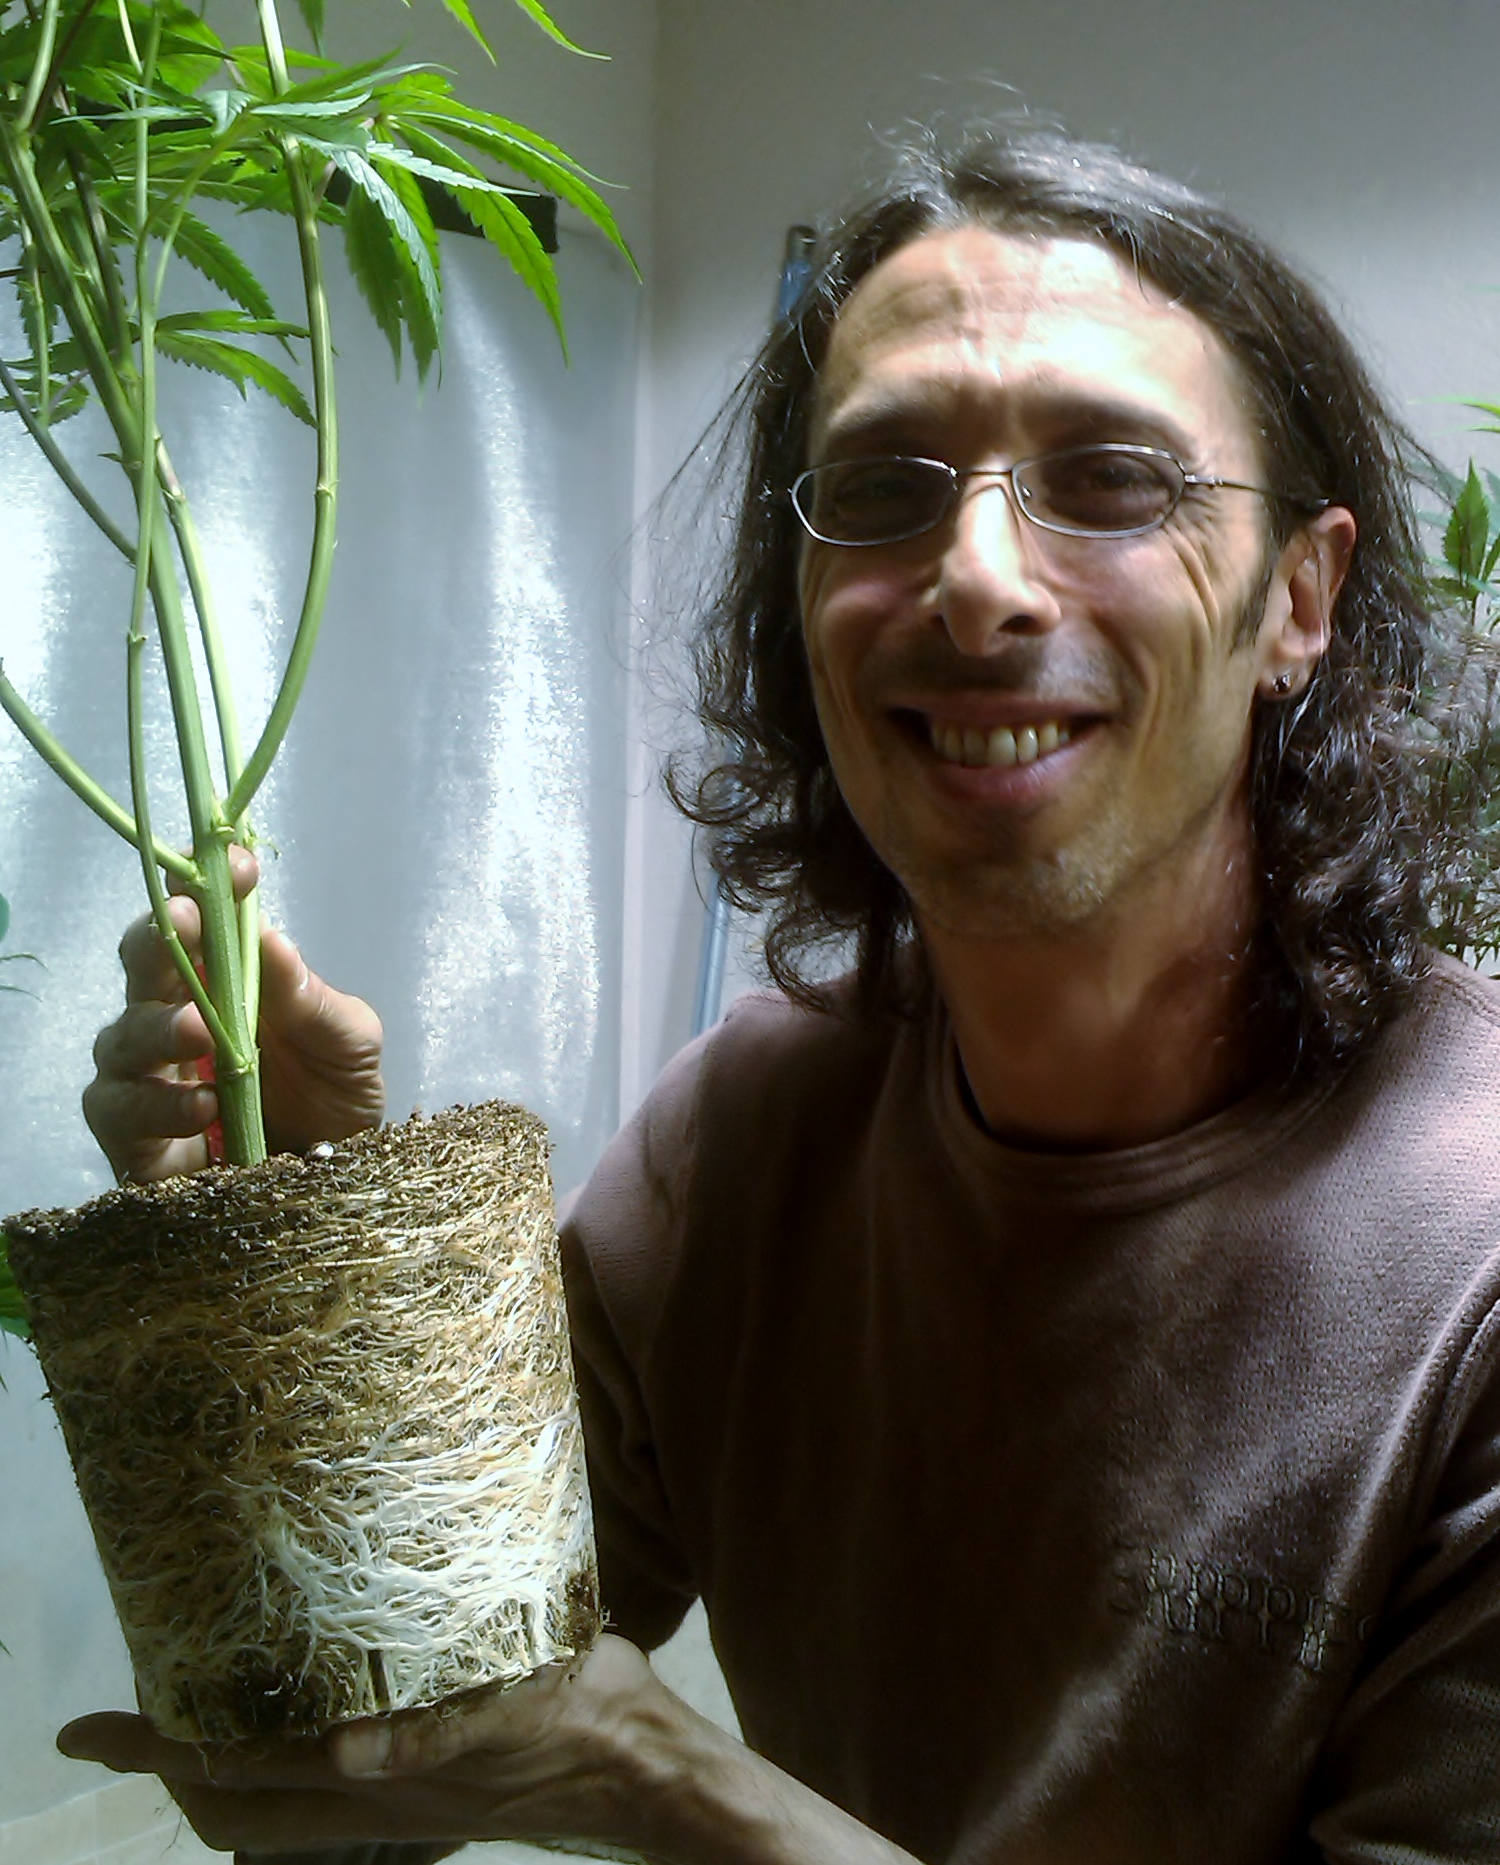 5q315-Great-Roots.jpg